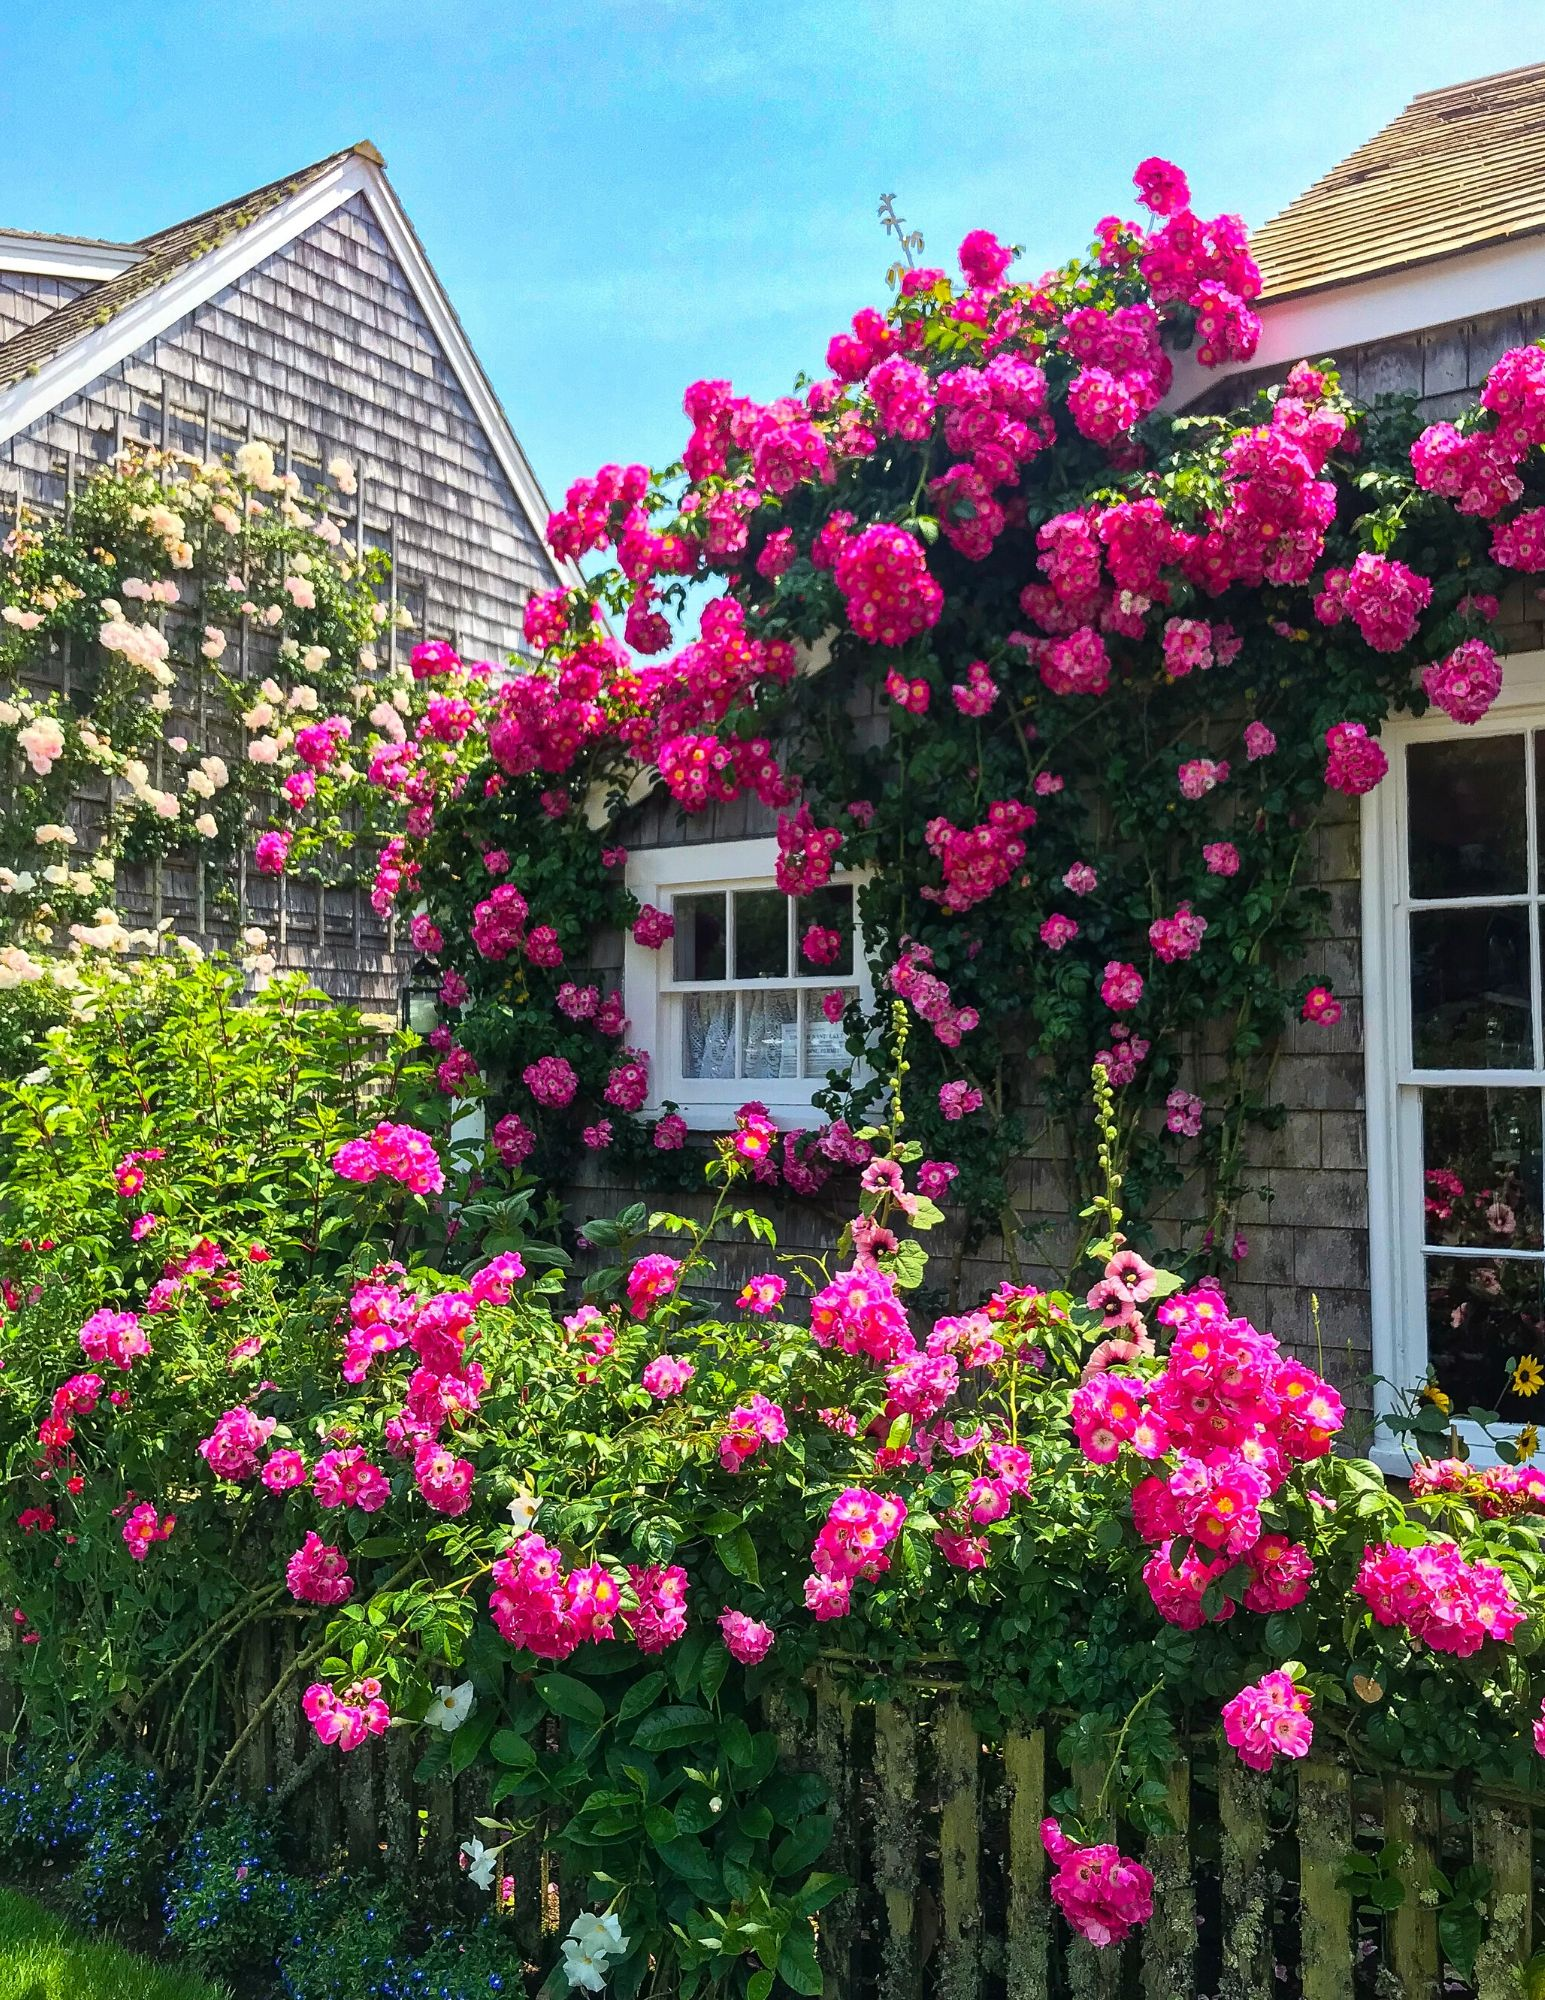 Nantucket Rose Covered Cottages in Sconset-10